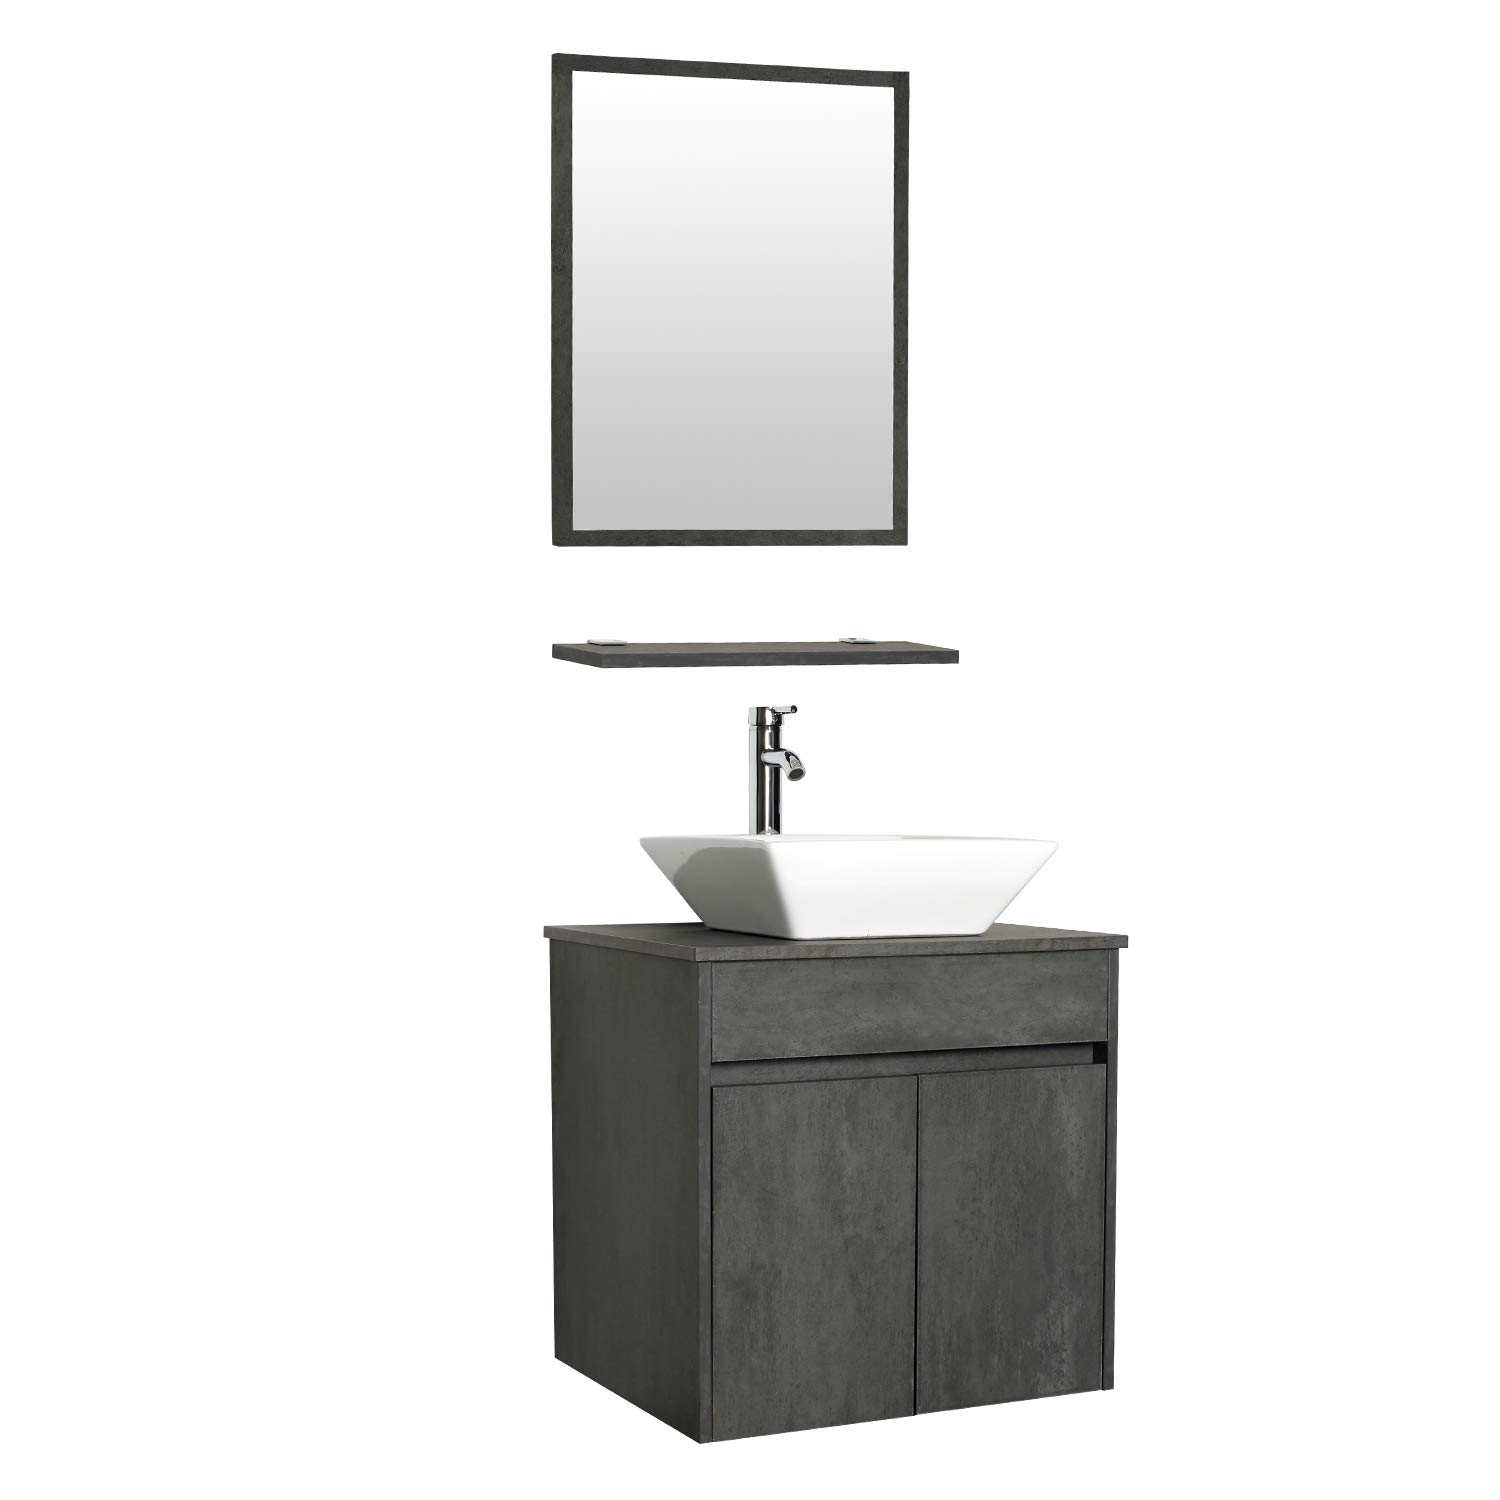 eclife 24 Bathroom Vanity Sink Combo Wall Mounted Concrete Grey Cabinet Vanity Set Square White Ceramic Vessel Sink Top, W Chrome Faucet, Pop Up Drain Mirror A07E03CC